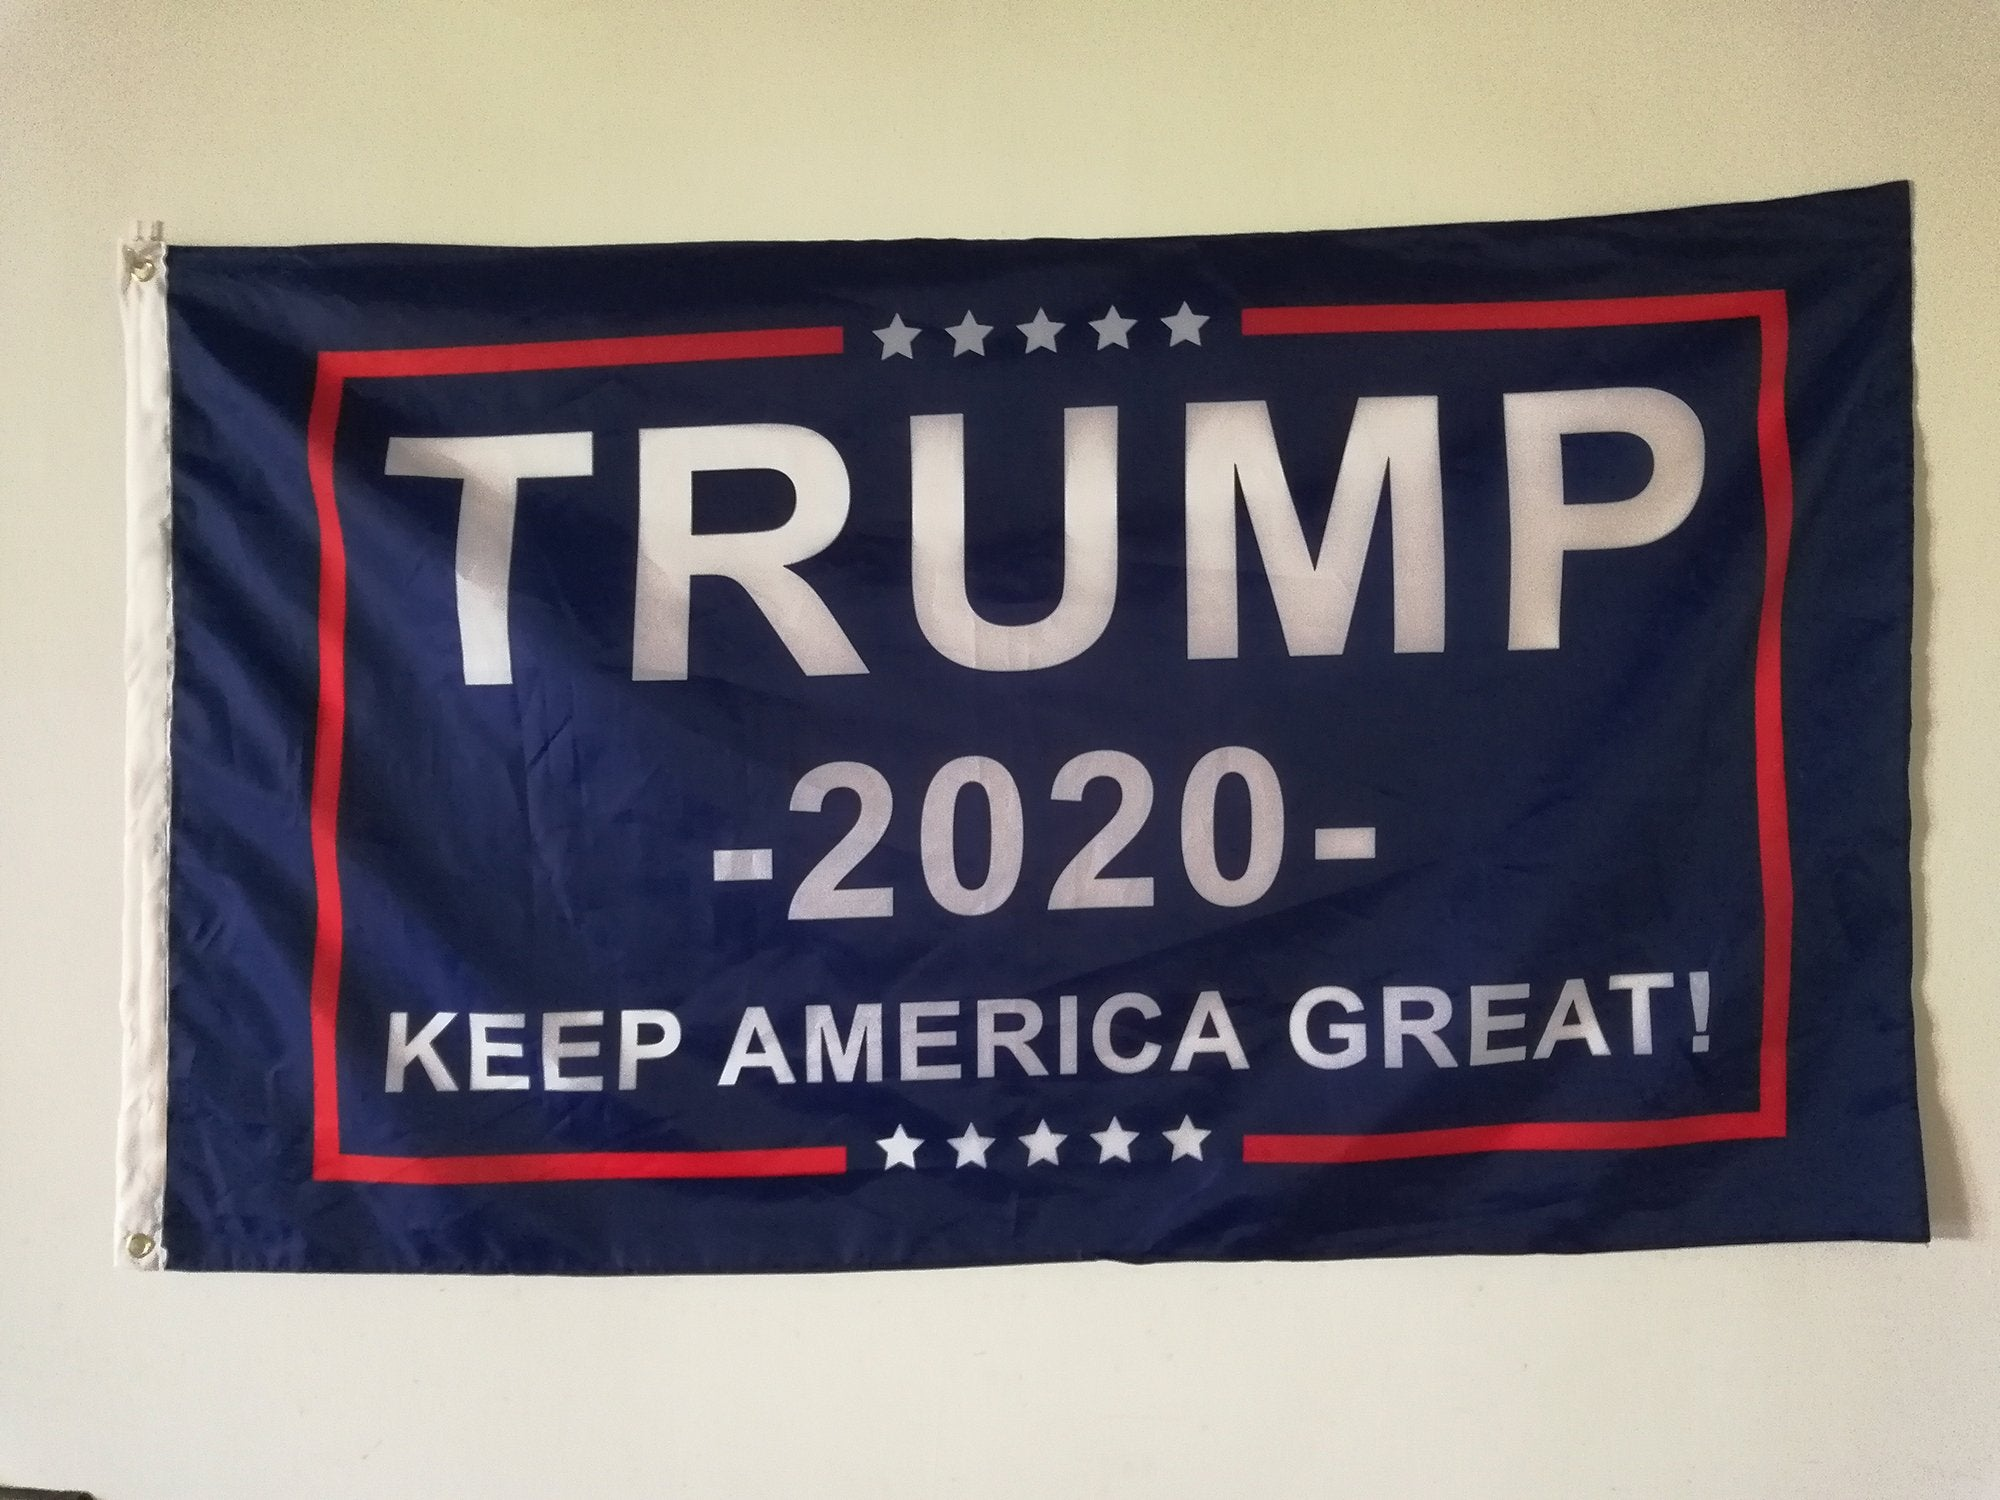 FREE Trump 2020 Flag - Keep America Great! - 3 ft x 5 ft -